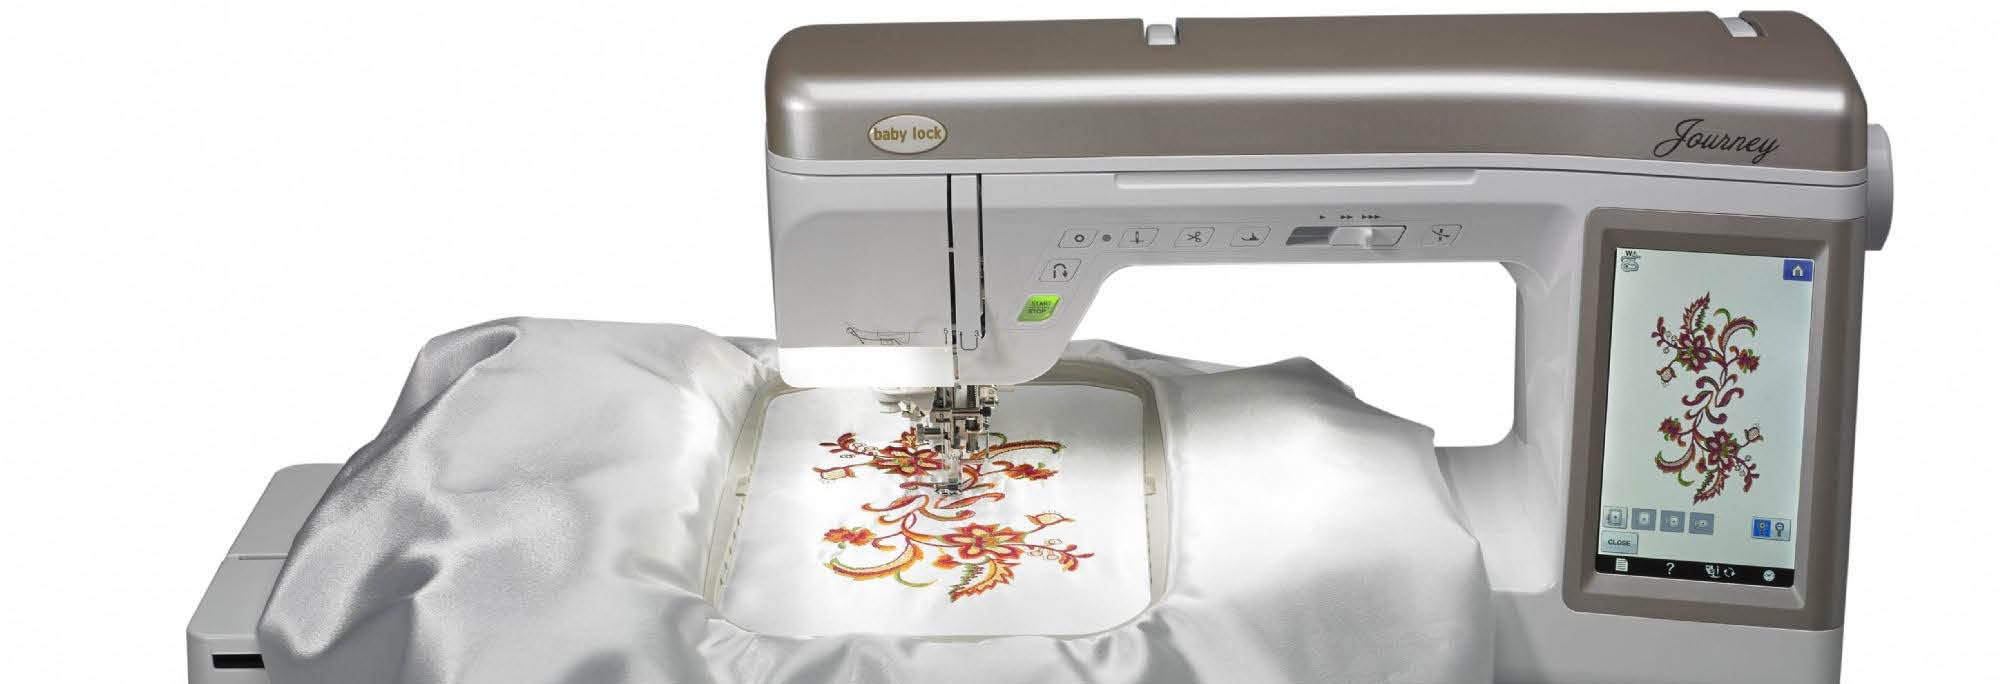 beach's sew and vac sewing and vacuum sales and service newport kentucky